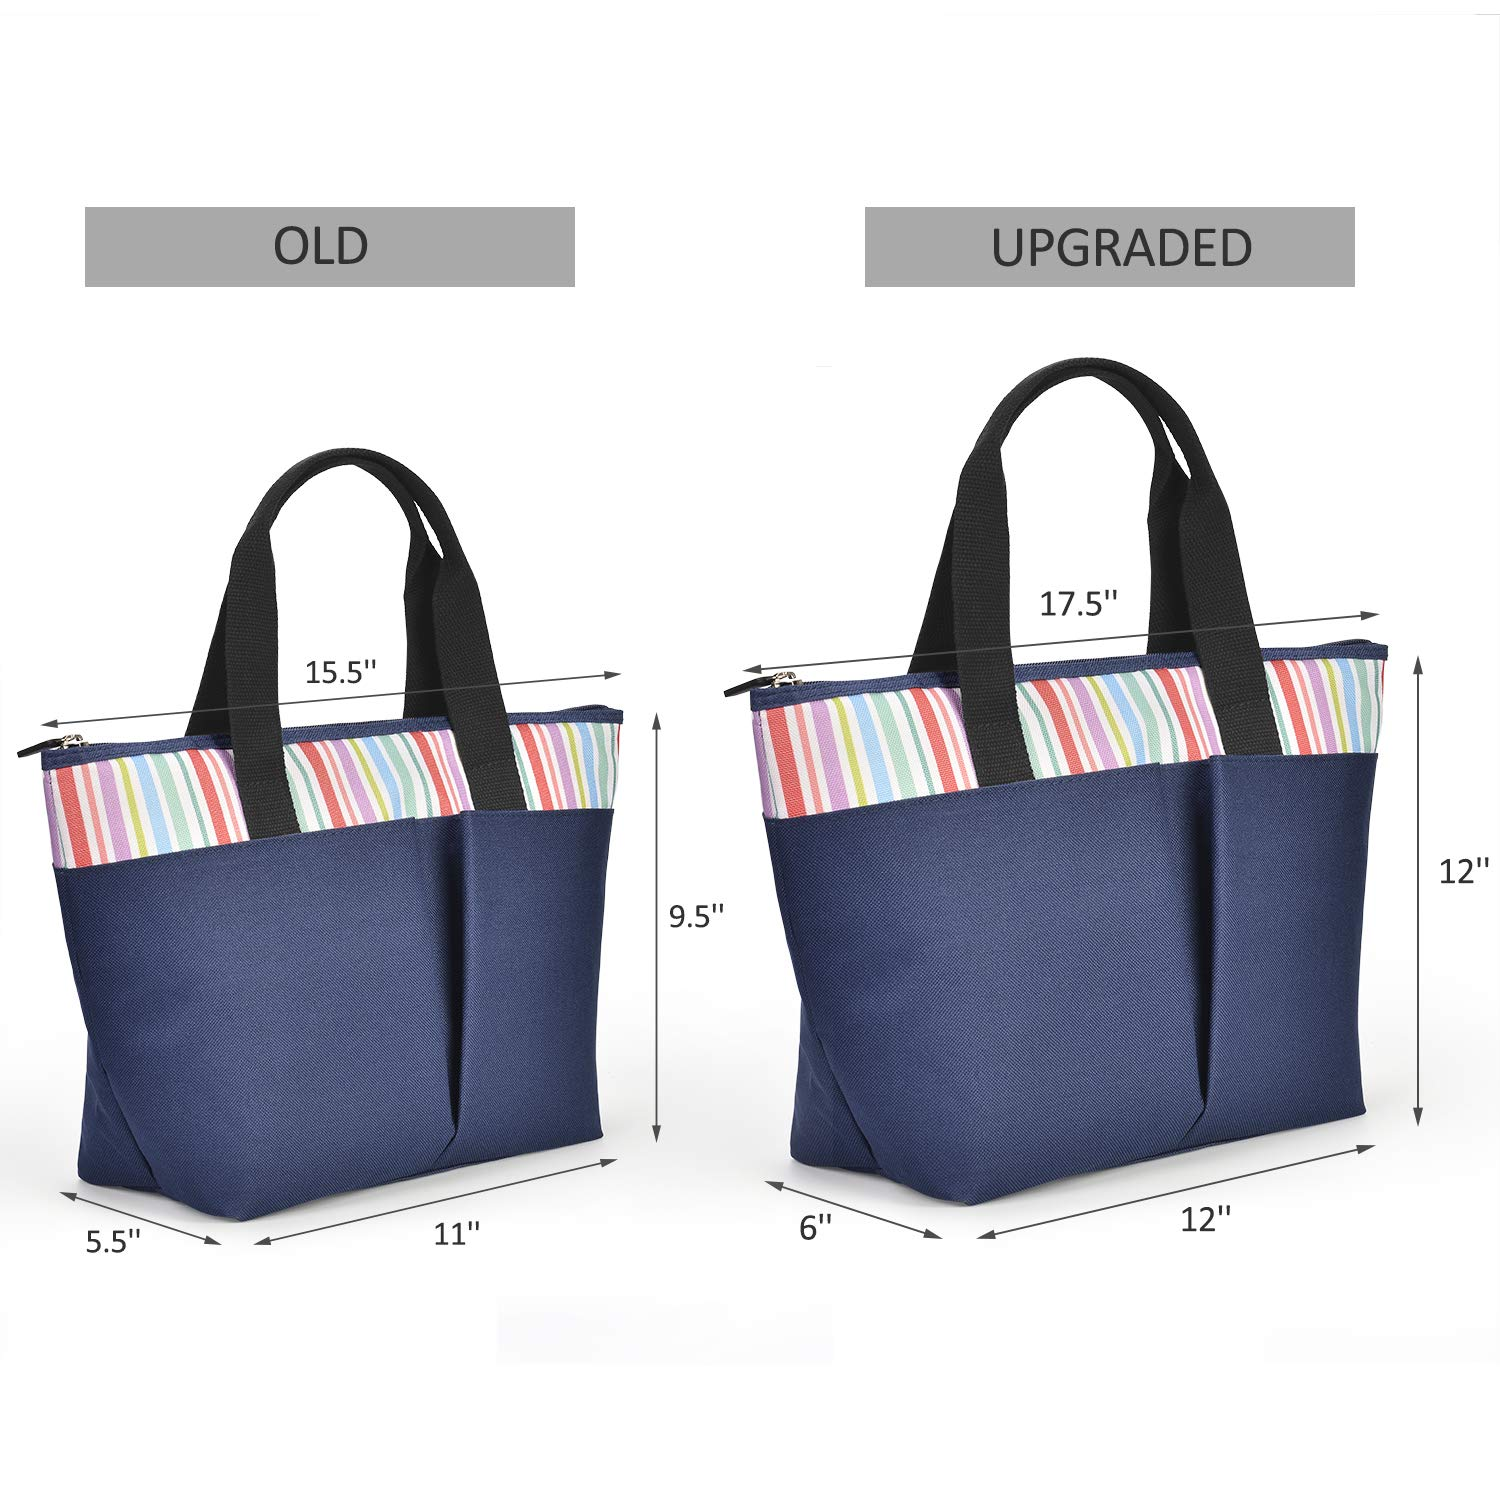 LEADO Insulated Lunch Box, Lunch Cooler Bag for Women Girls Reusable Large Capacity Lunch Tote Organizer Bag Handbag Meal Prep Thermal Bag, Striped Navy Blue